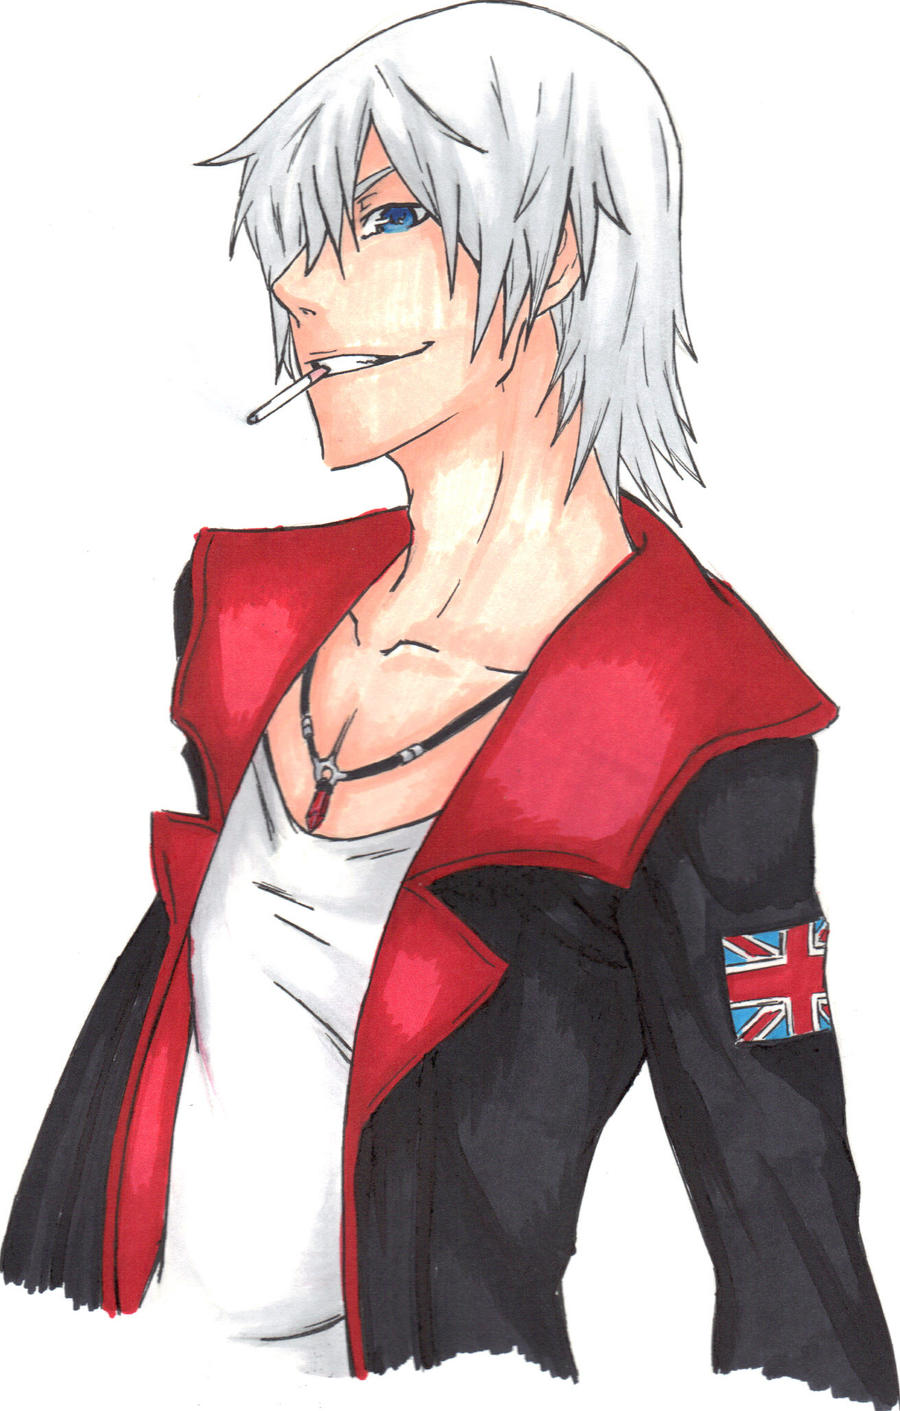 Dmc Devil May Cry by xXLostPaintingsOx